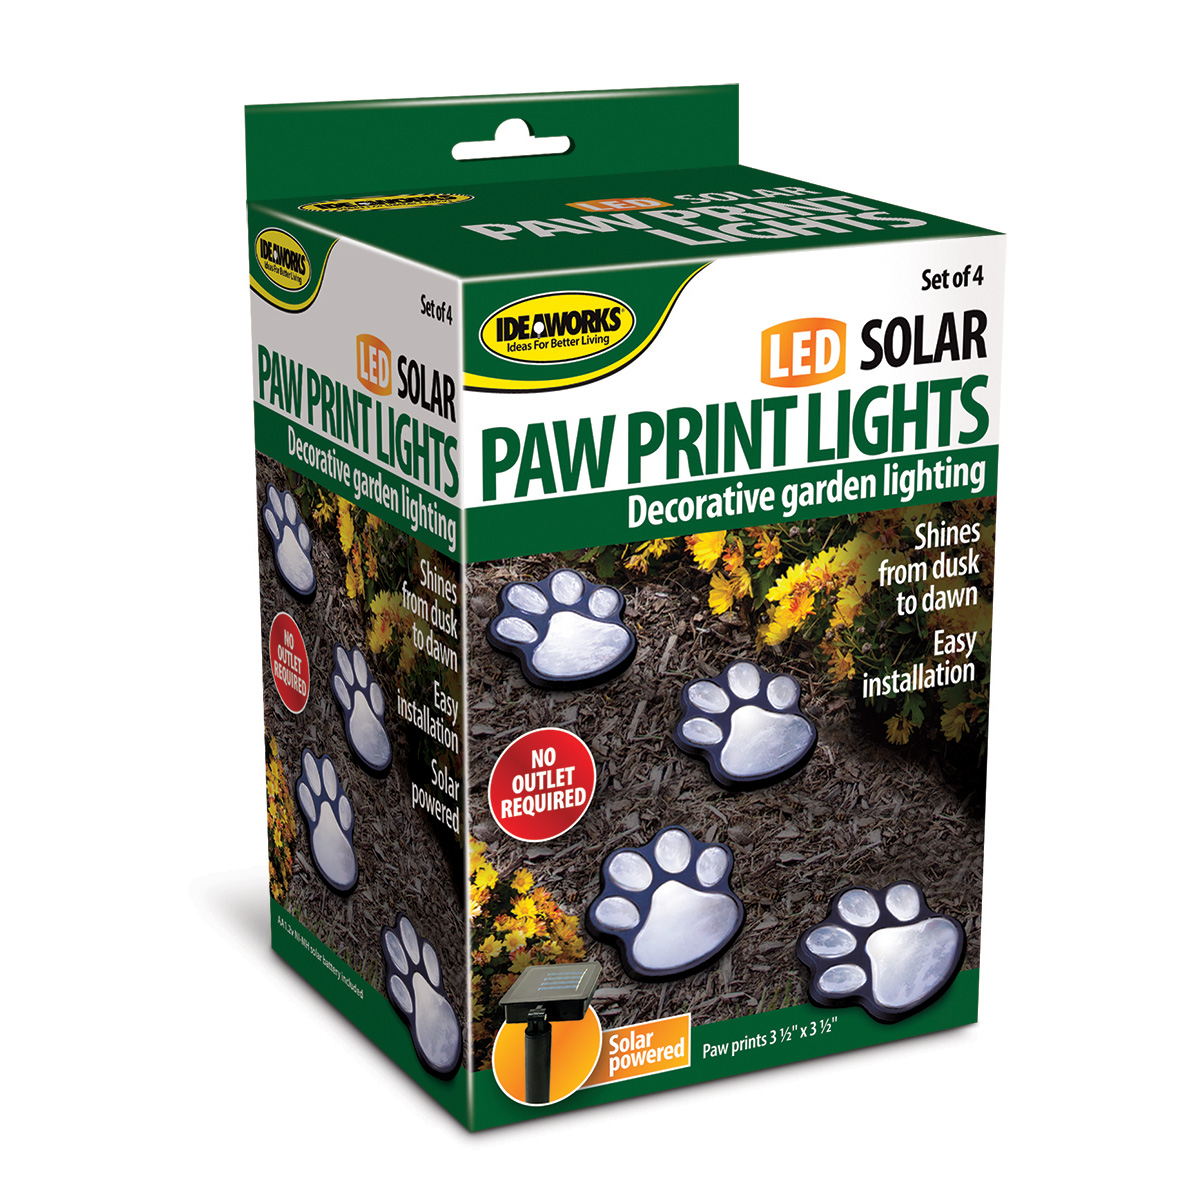 Ideawork's Set of 4 LED Pathway Paw Print Solar Lights by Jobar International